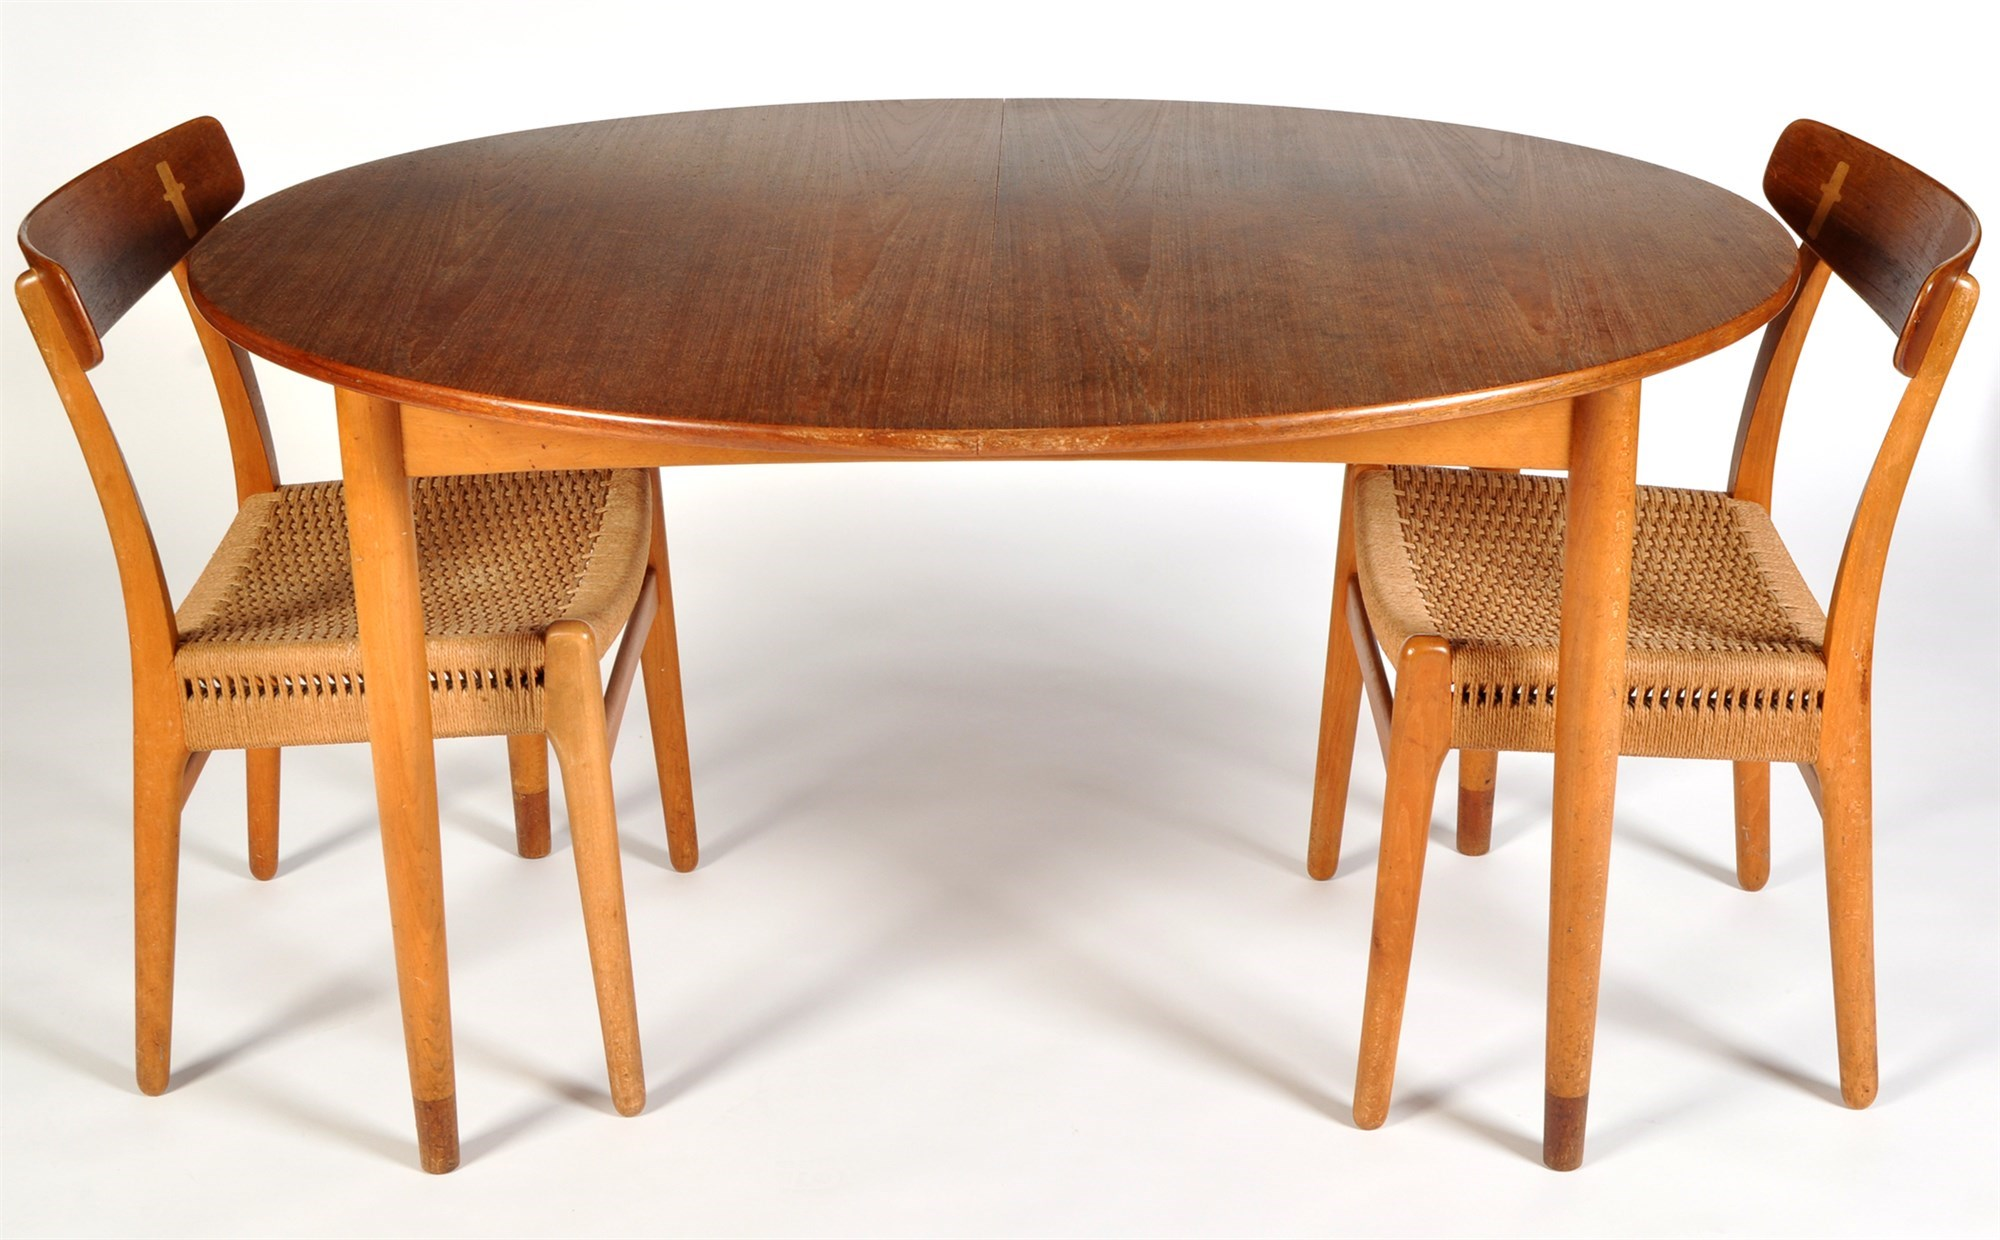 Six Danish teak and beech wood dining chairs, with rush seats, after a design by Hans Wegner, probably Model CH23;